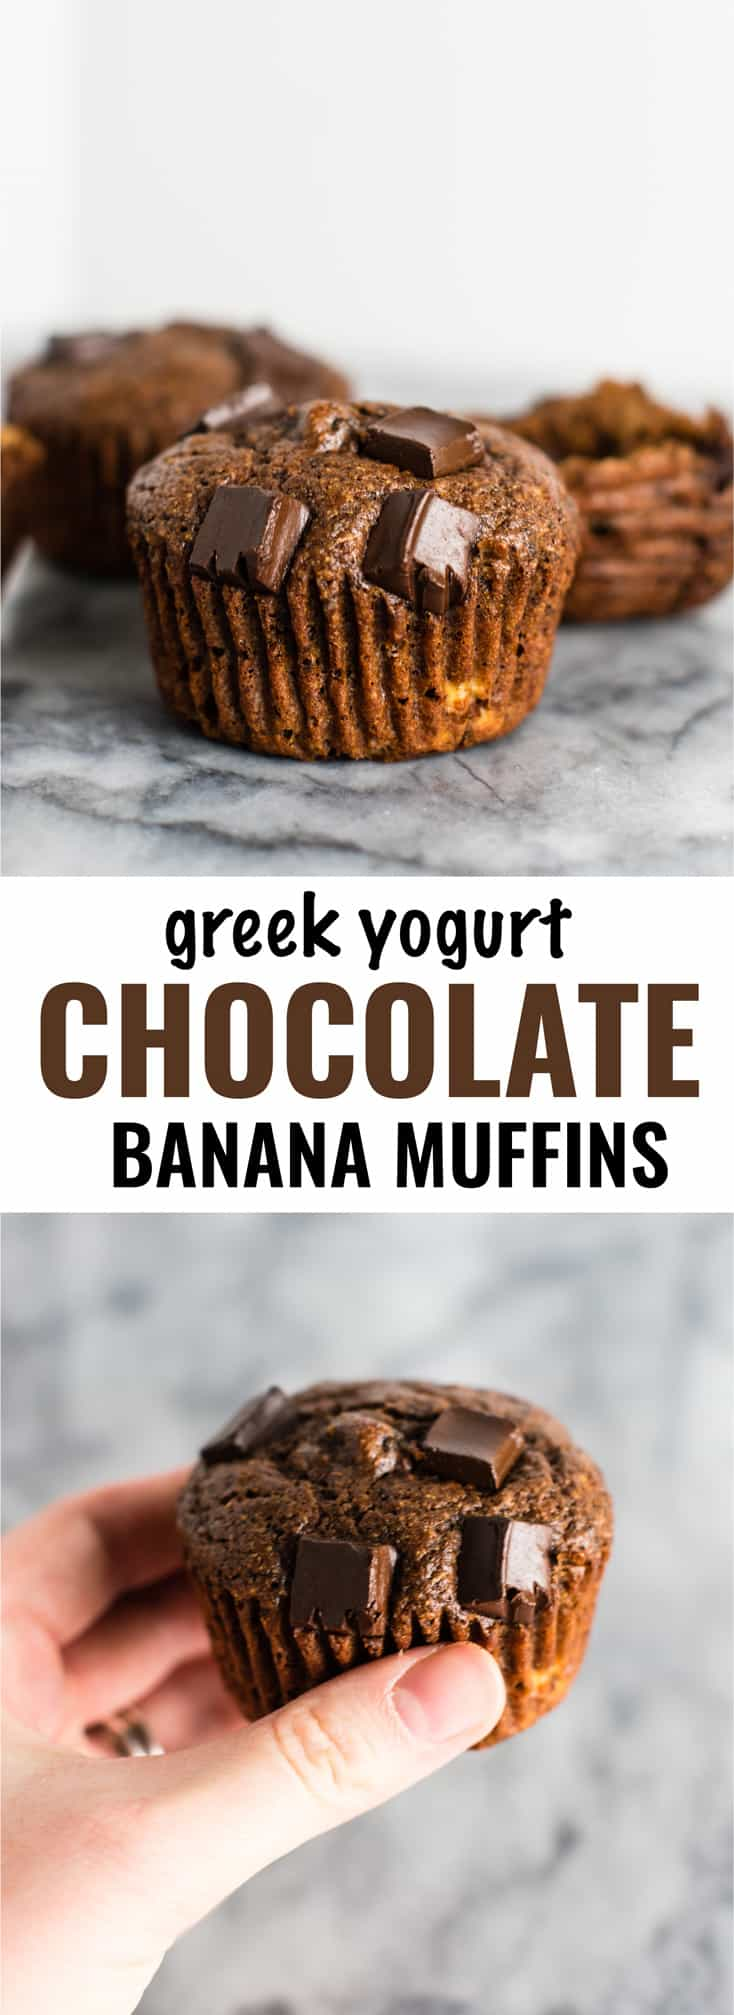 Greek Yogurt Chocolate Banana Muffins – healthy and so good! Who doesn't want chocolate for breakfast?! #healthychocolatemuffins #breakfast #greekyogurt #chocolatebananamuffins #greekyogurtmuffins